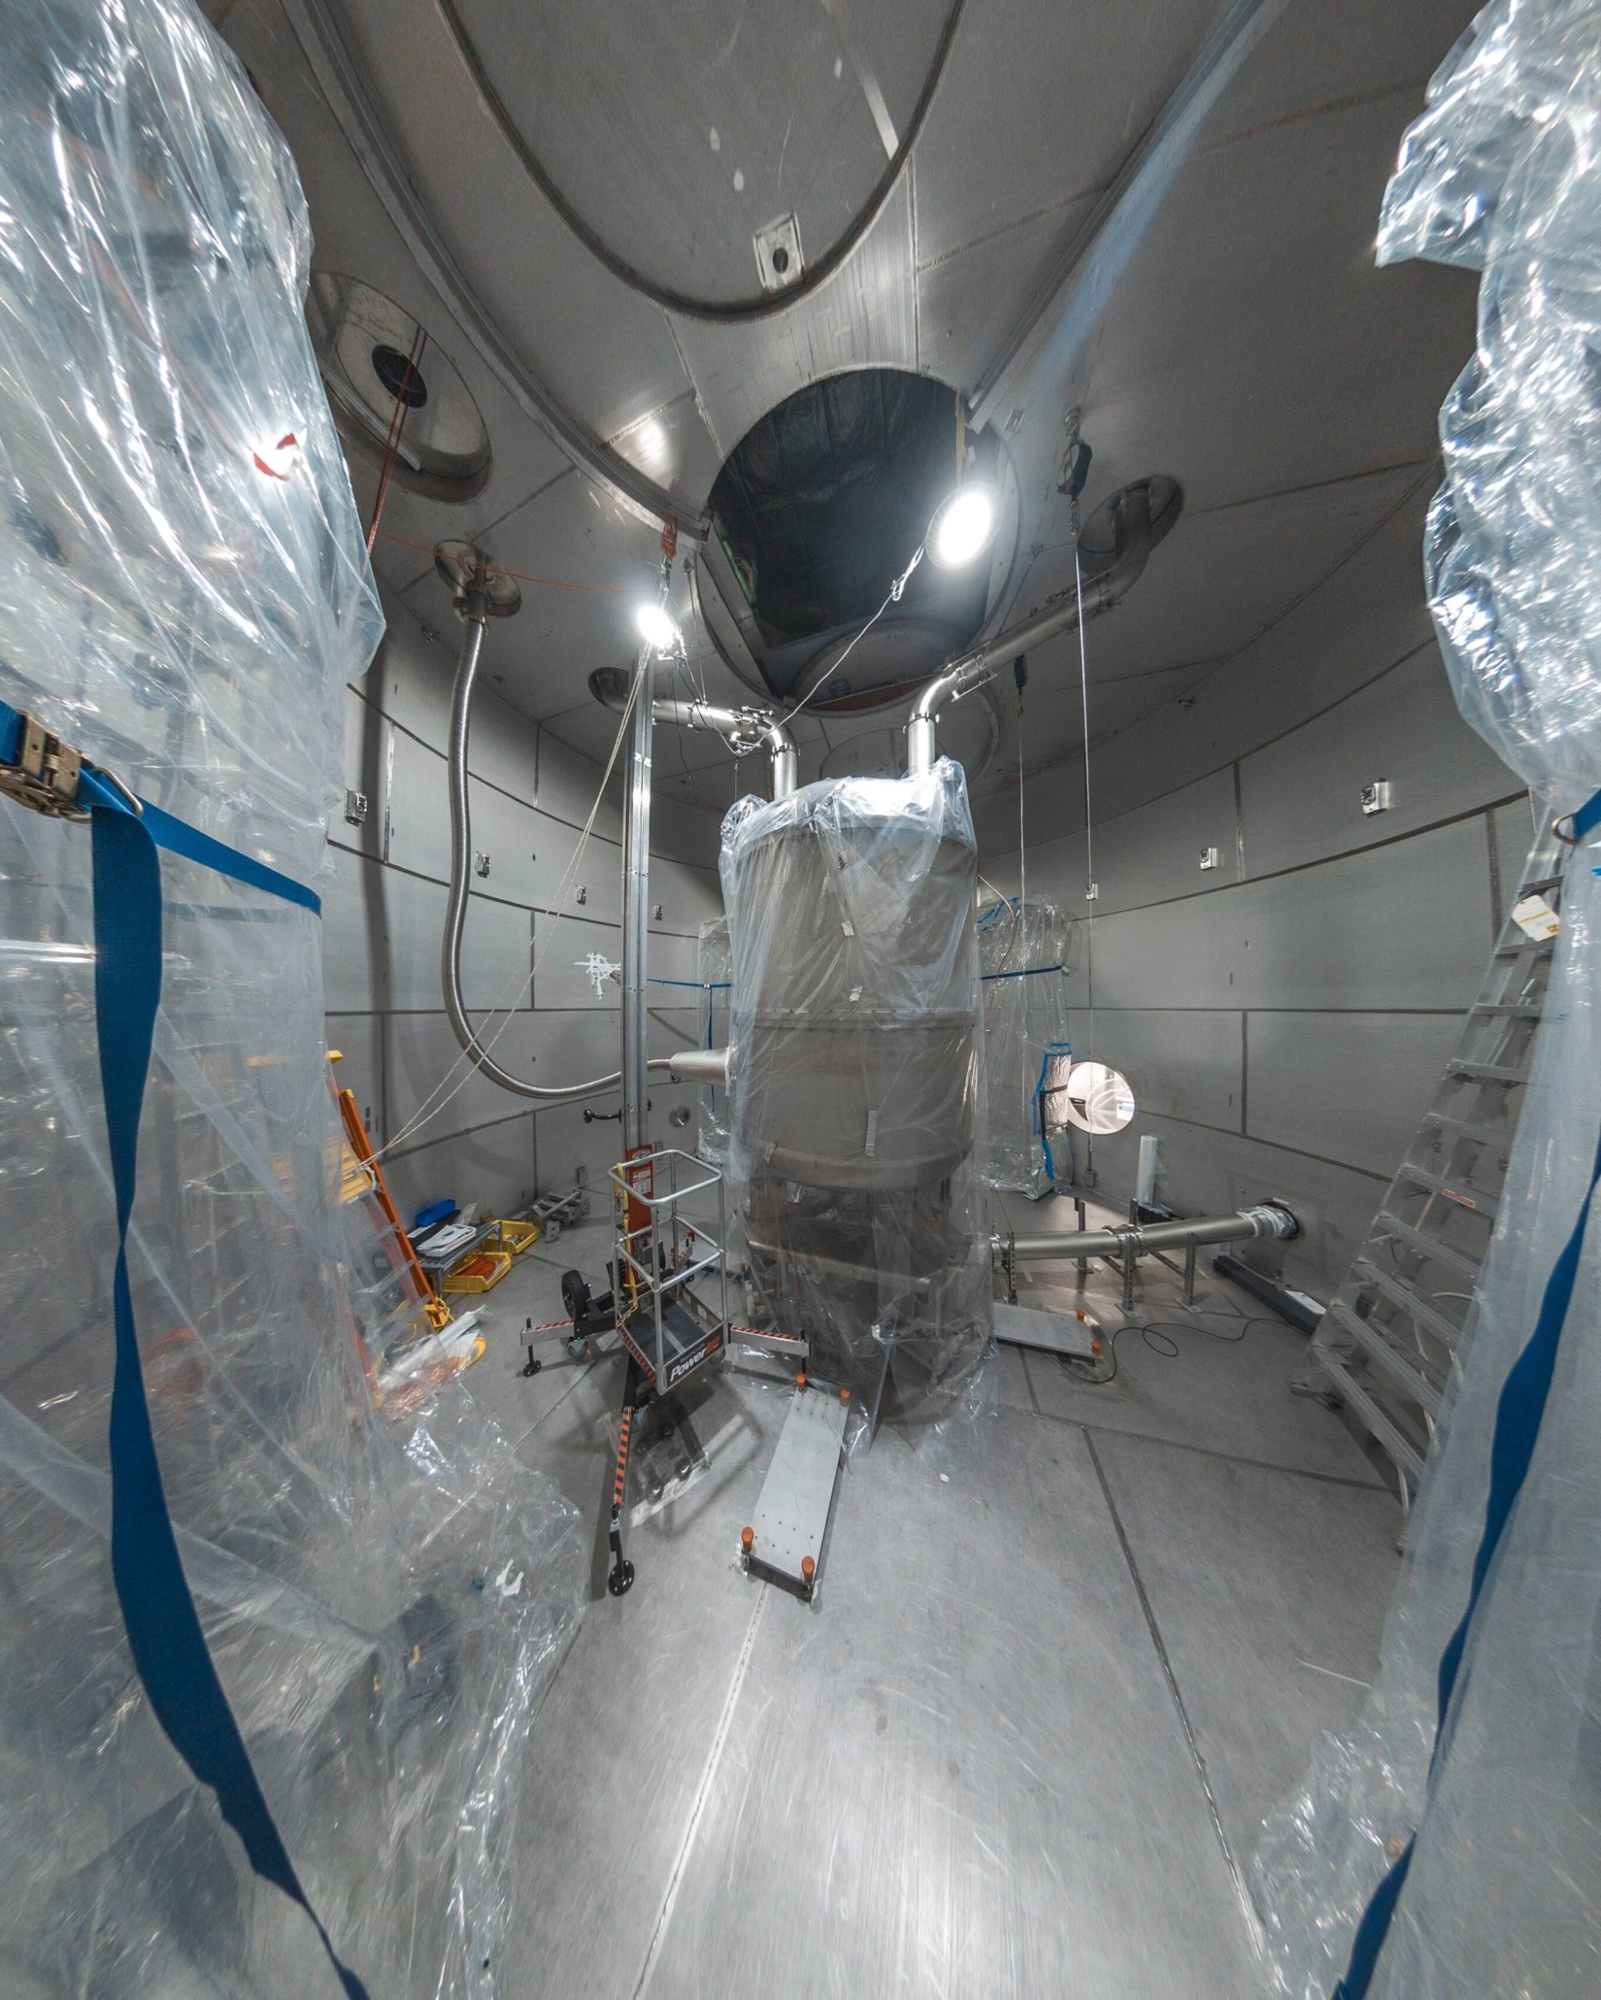 Researchers Complete Key Milestone for Experiment Designed to Detect Dark Matter